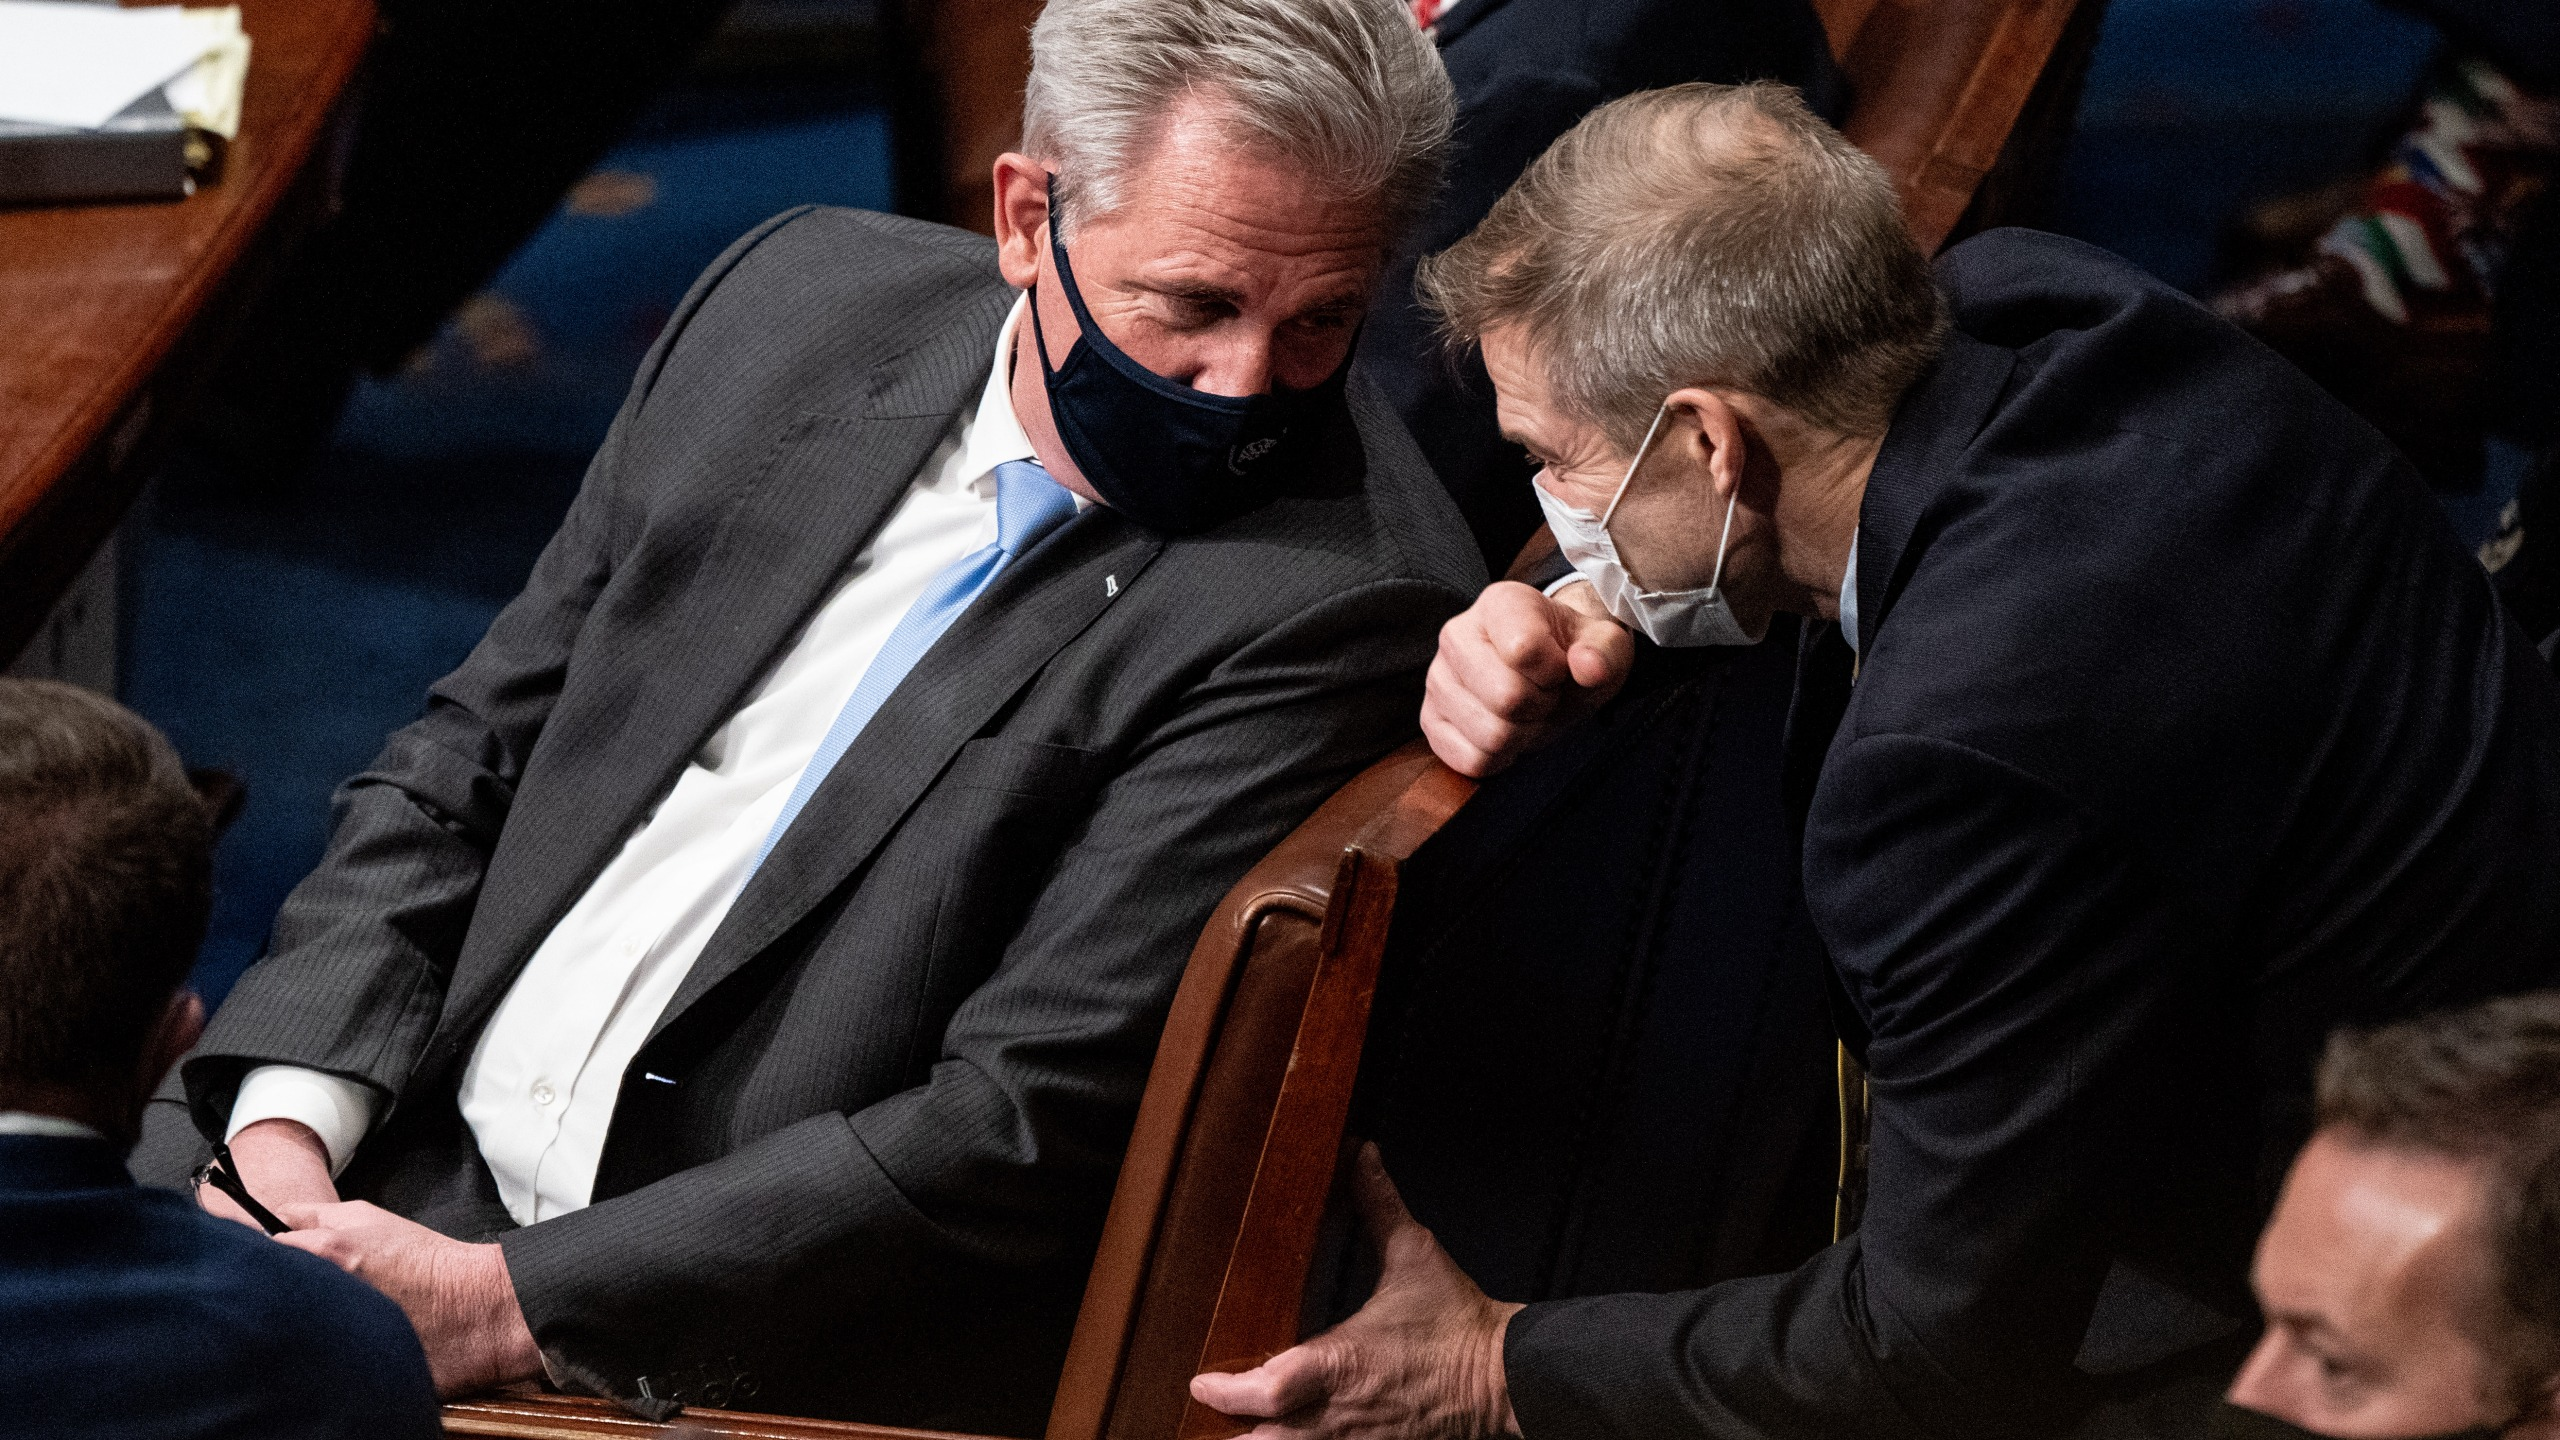 House Minority Leader Kevin McCarthy (R-CA) and Rep. Jim Jordan (R-OH) talk during a joint session of Congress on Jan. 6, 2021 in Washington, DC. Congress has reconvened to ratify President-elect Joe Biden's 306-232 Electoral College win over President Donald Trump, hours after a pro-Trump mob broke into the U.S. Capitol and disrupted proceedings. (Erin Schaff - Pool/Getty Images)